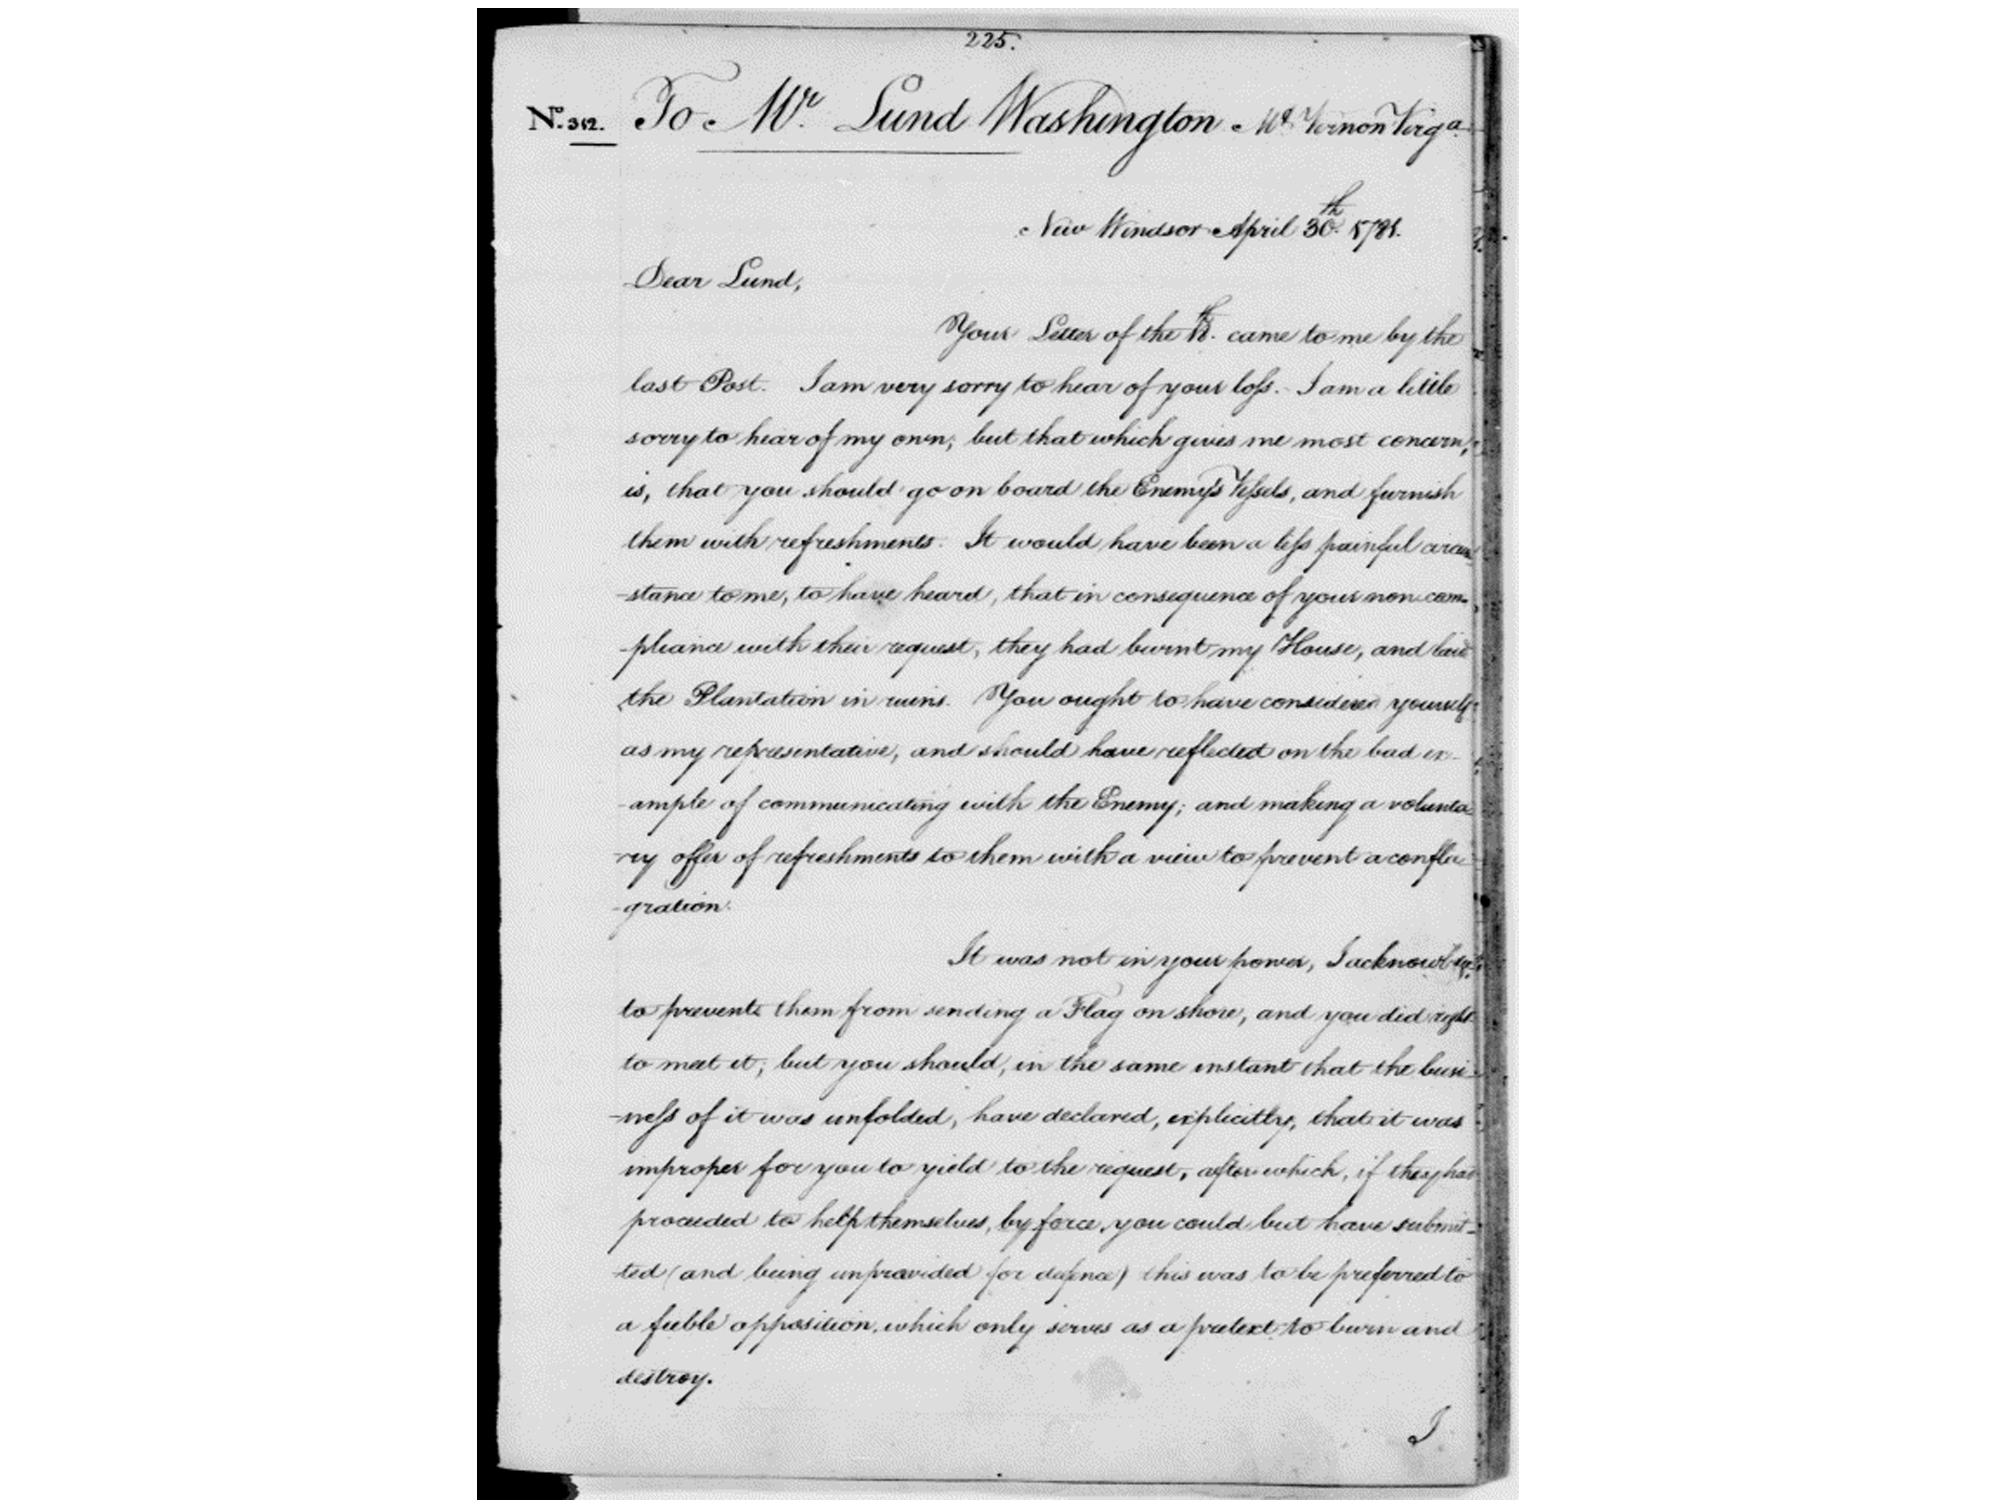 General Washington letter to Lund Washington